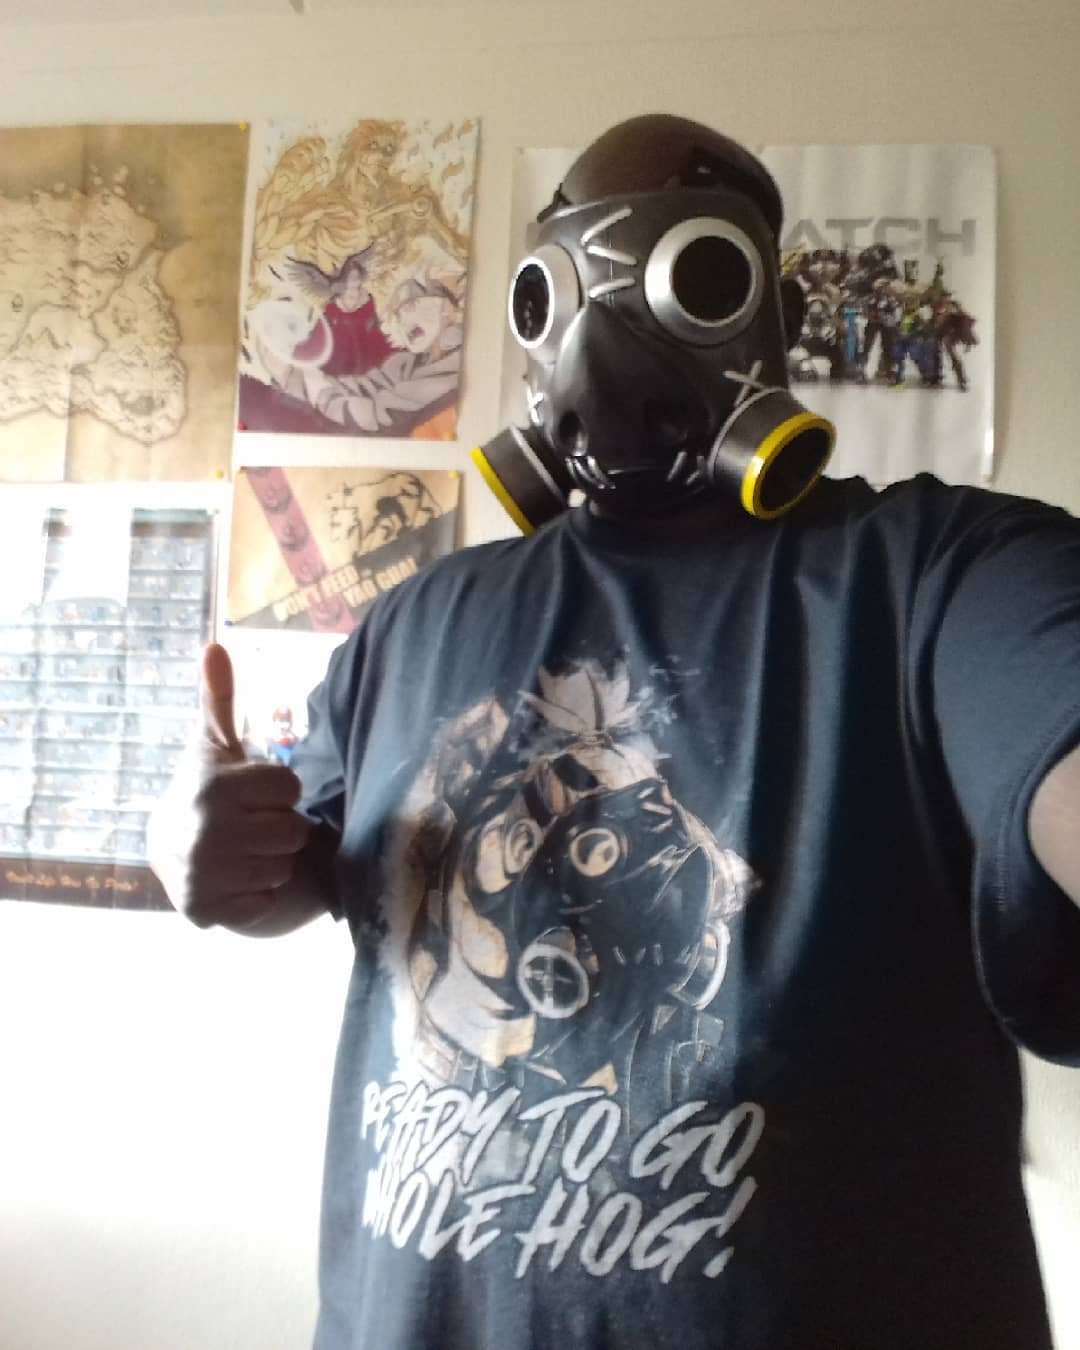 Overwatch Roadhog Ready To Go Whole Hog Shirts photo review